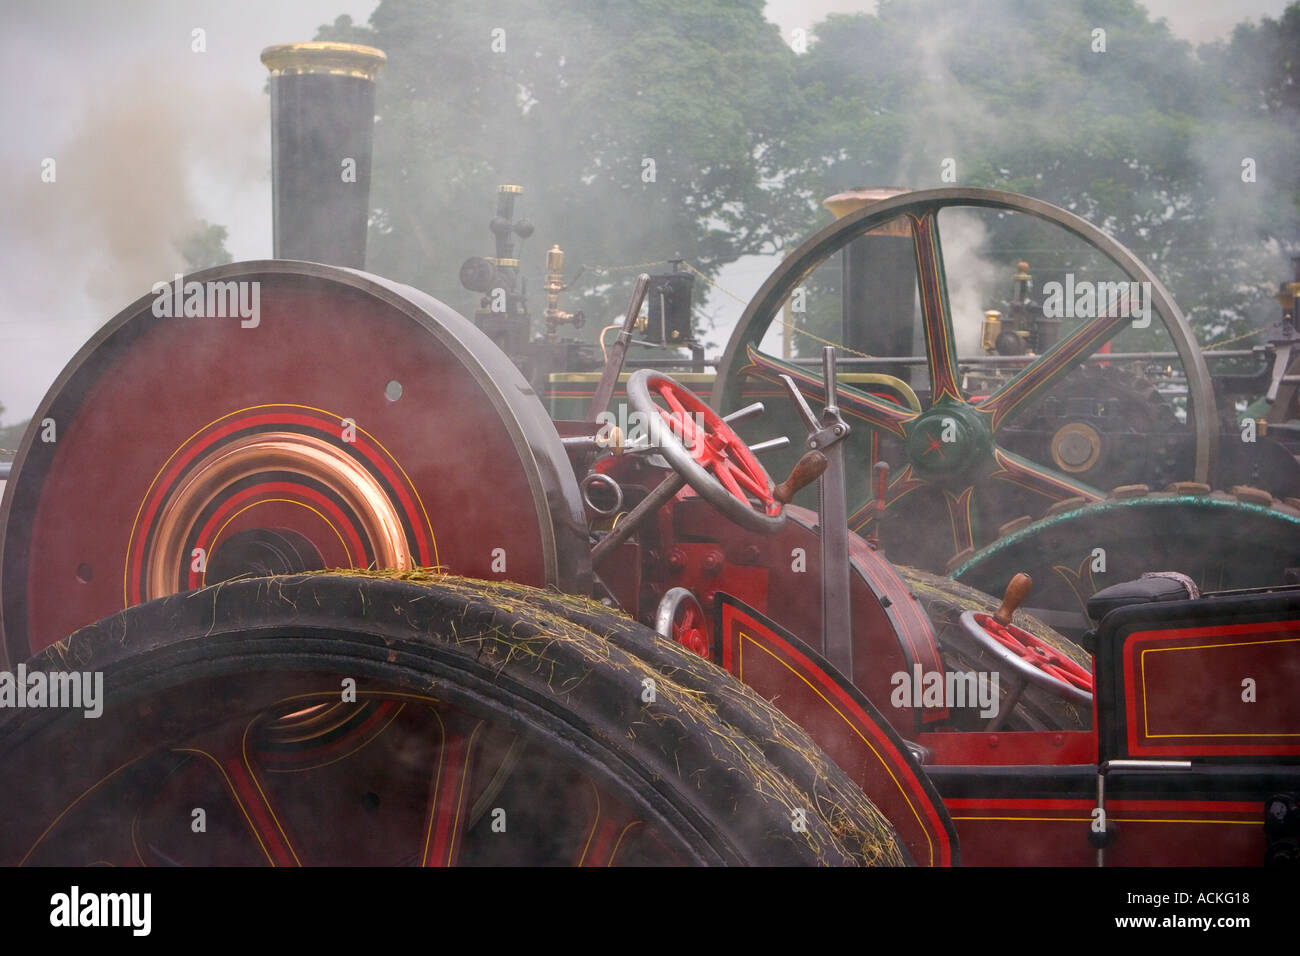 Steam engine rally - showing smoking fly-wheels soon after engines started, Scotland. Stock Photo